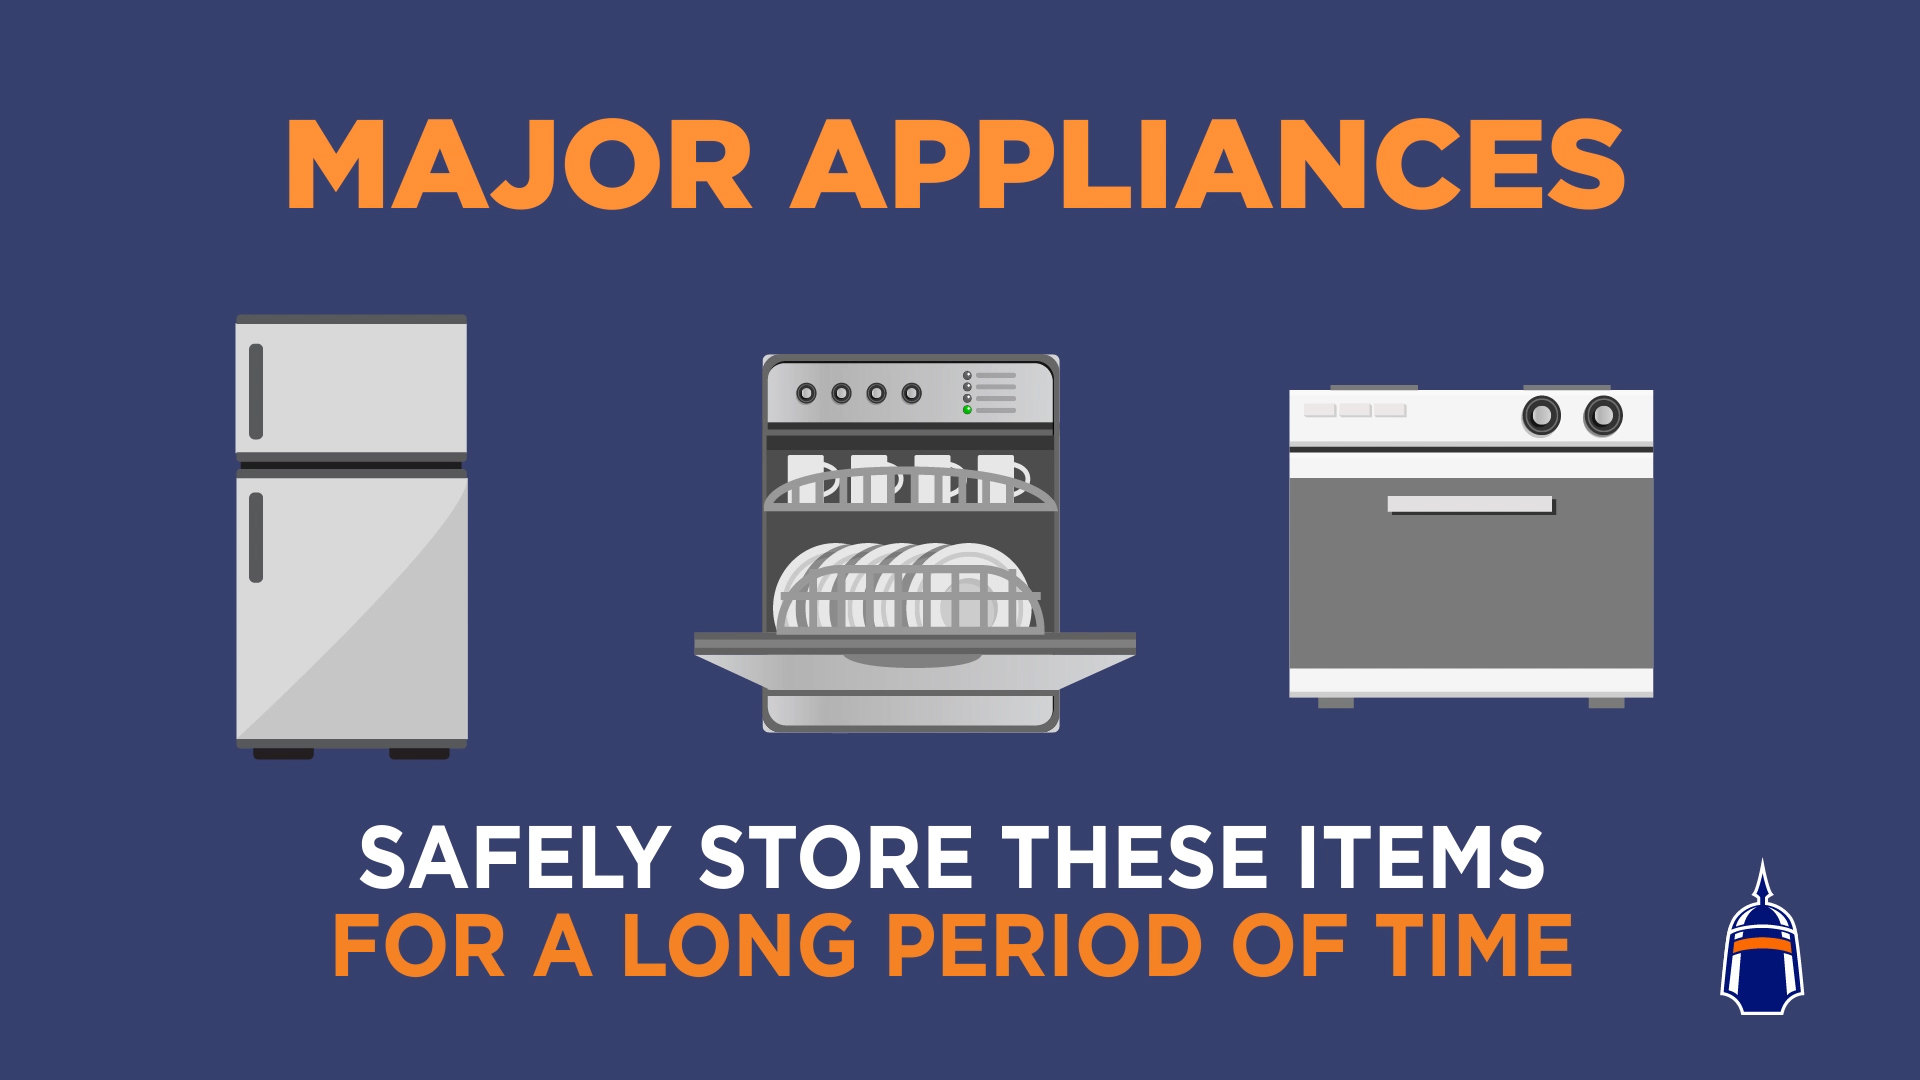 How to Store Major Appliances. Safely store these items for a long period of time.